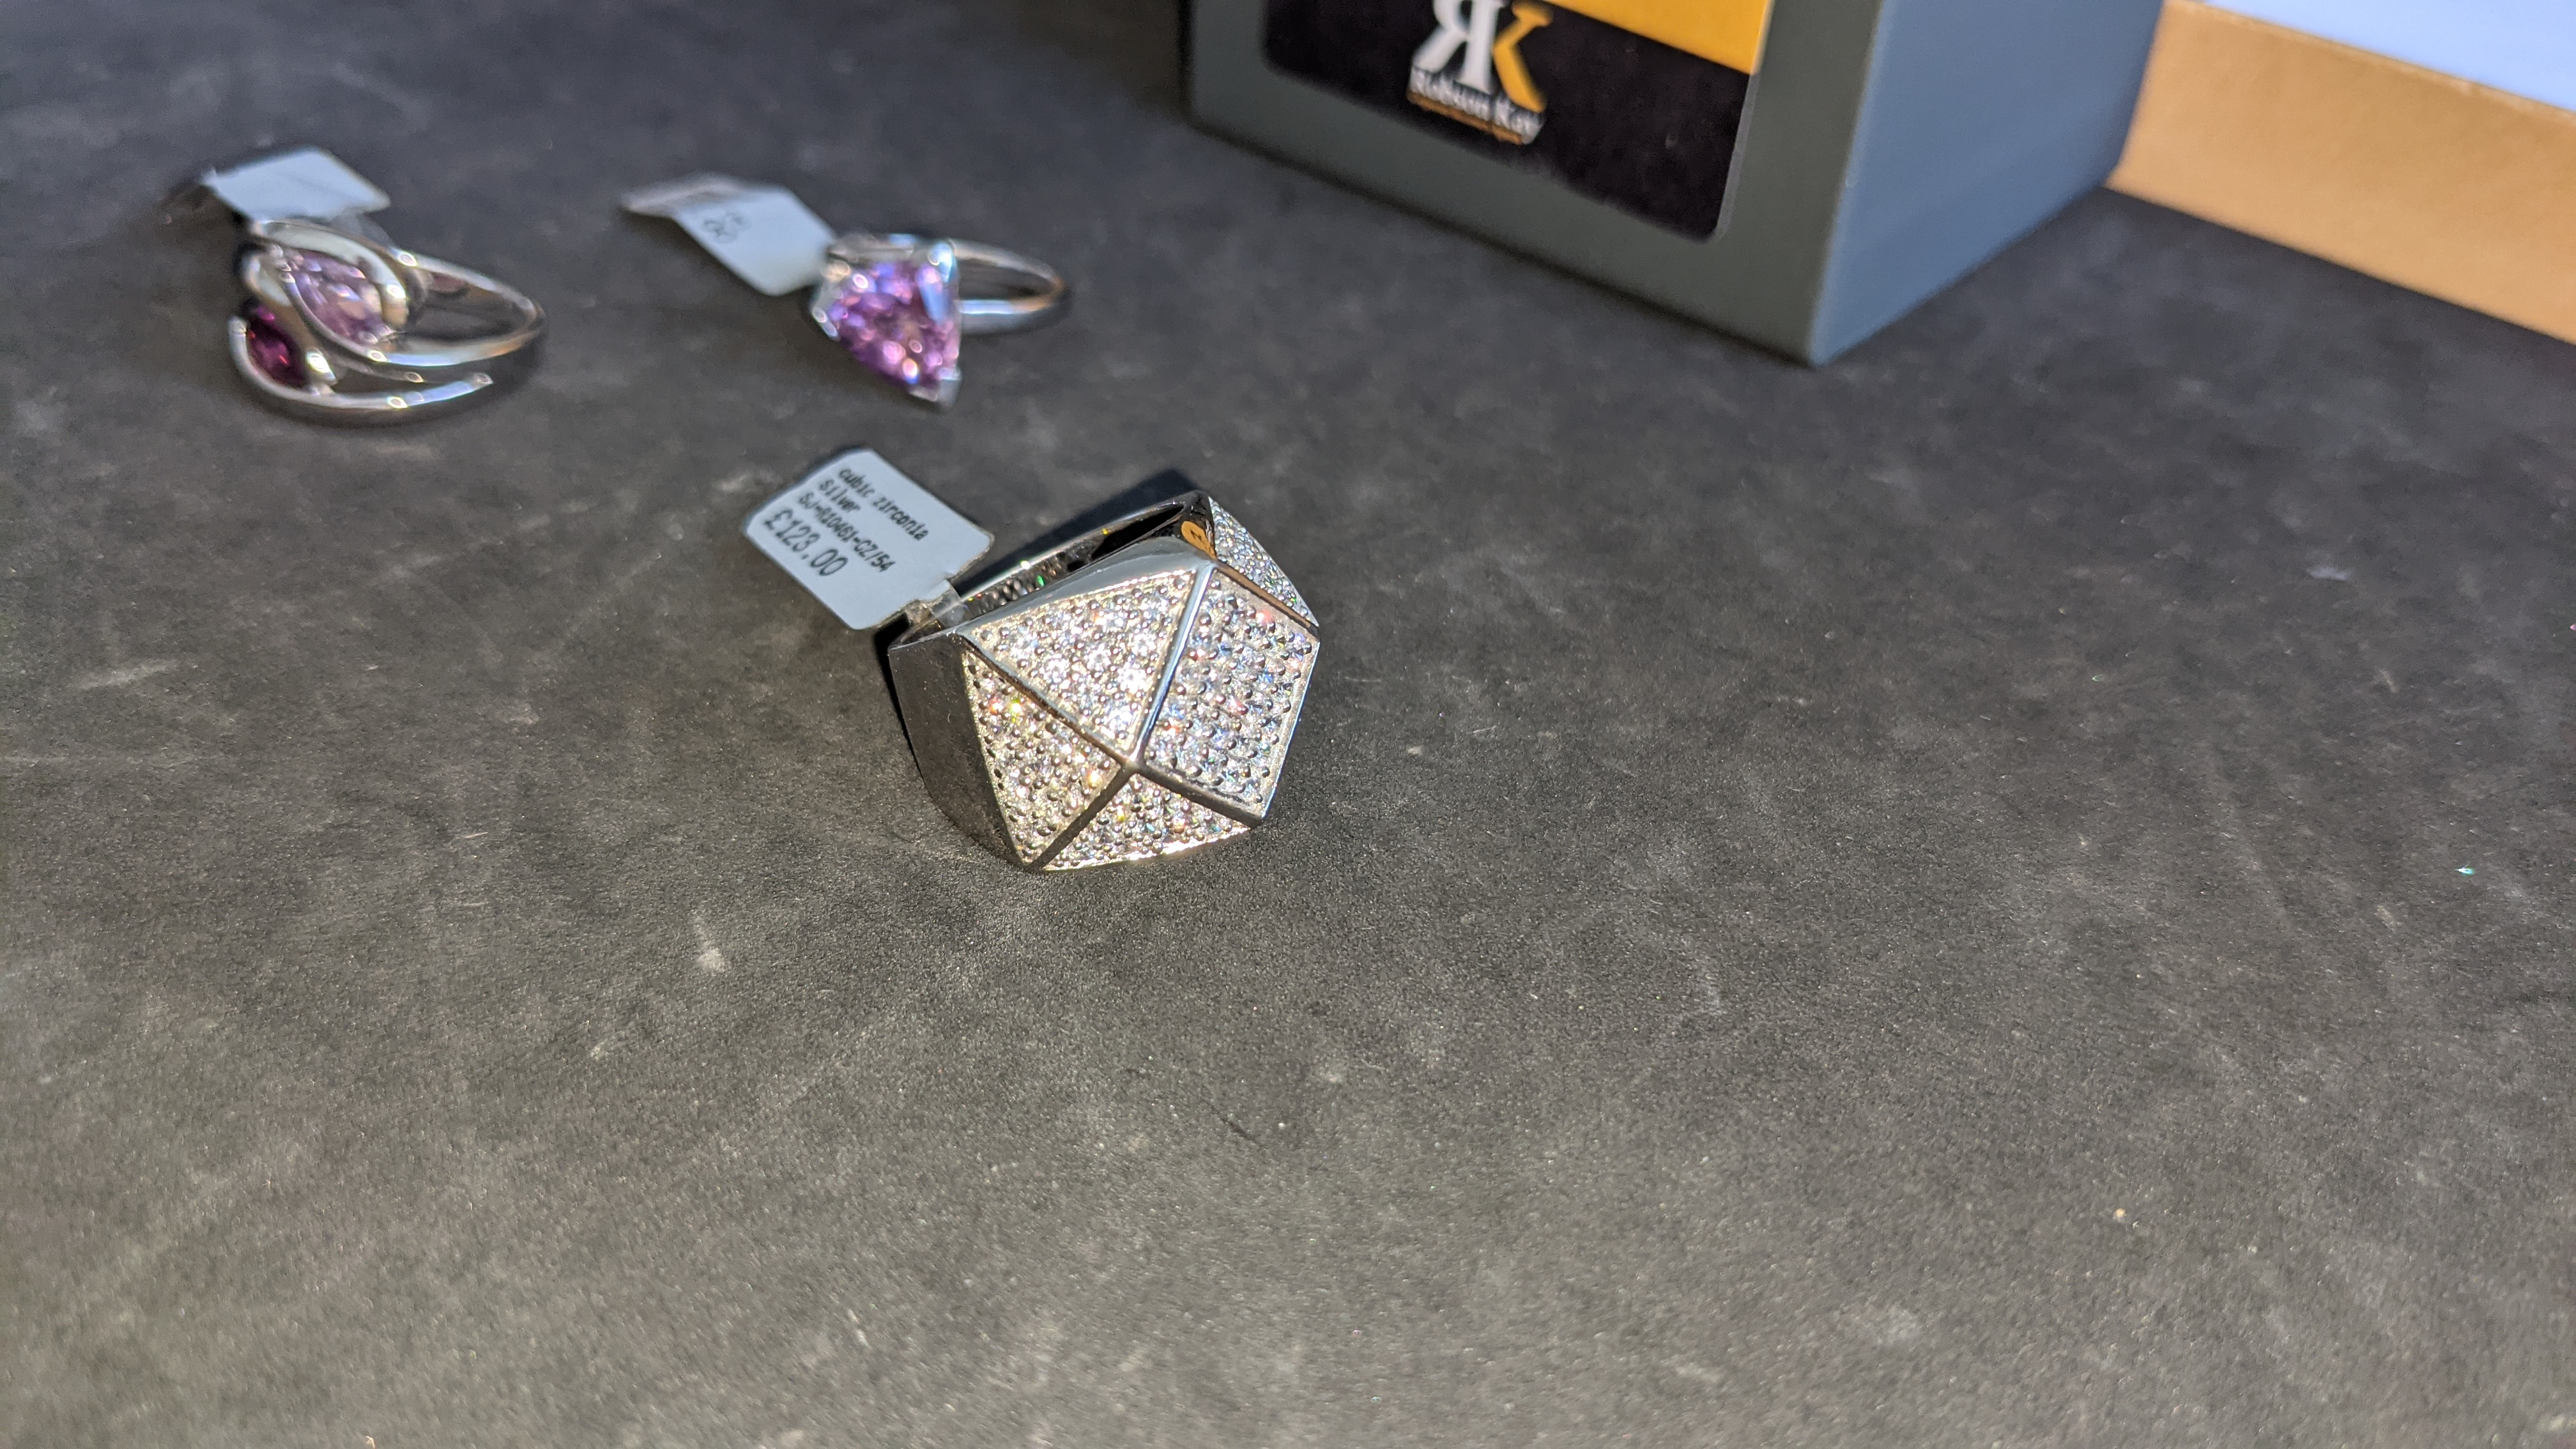 3 off assorted silver rings, each with a coloured stone. RRP from £115 - £123. Total RRP is £358 - Image 7 of 11